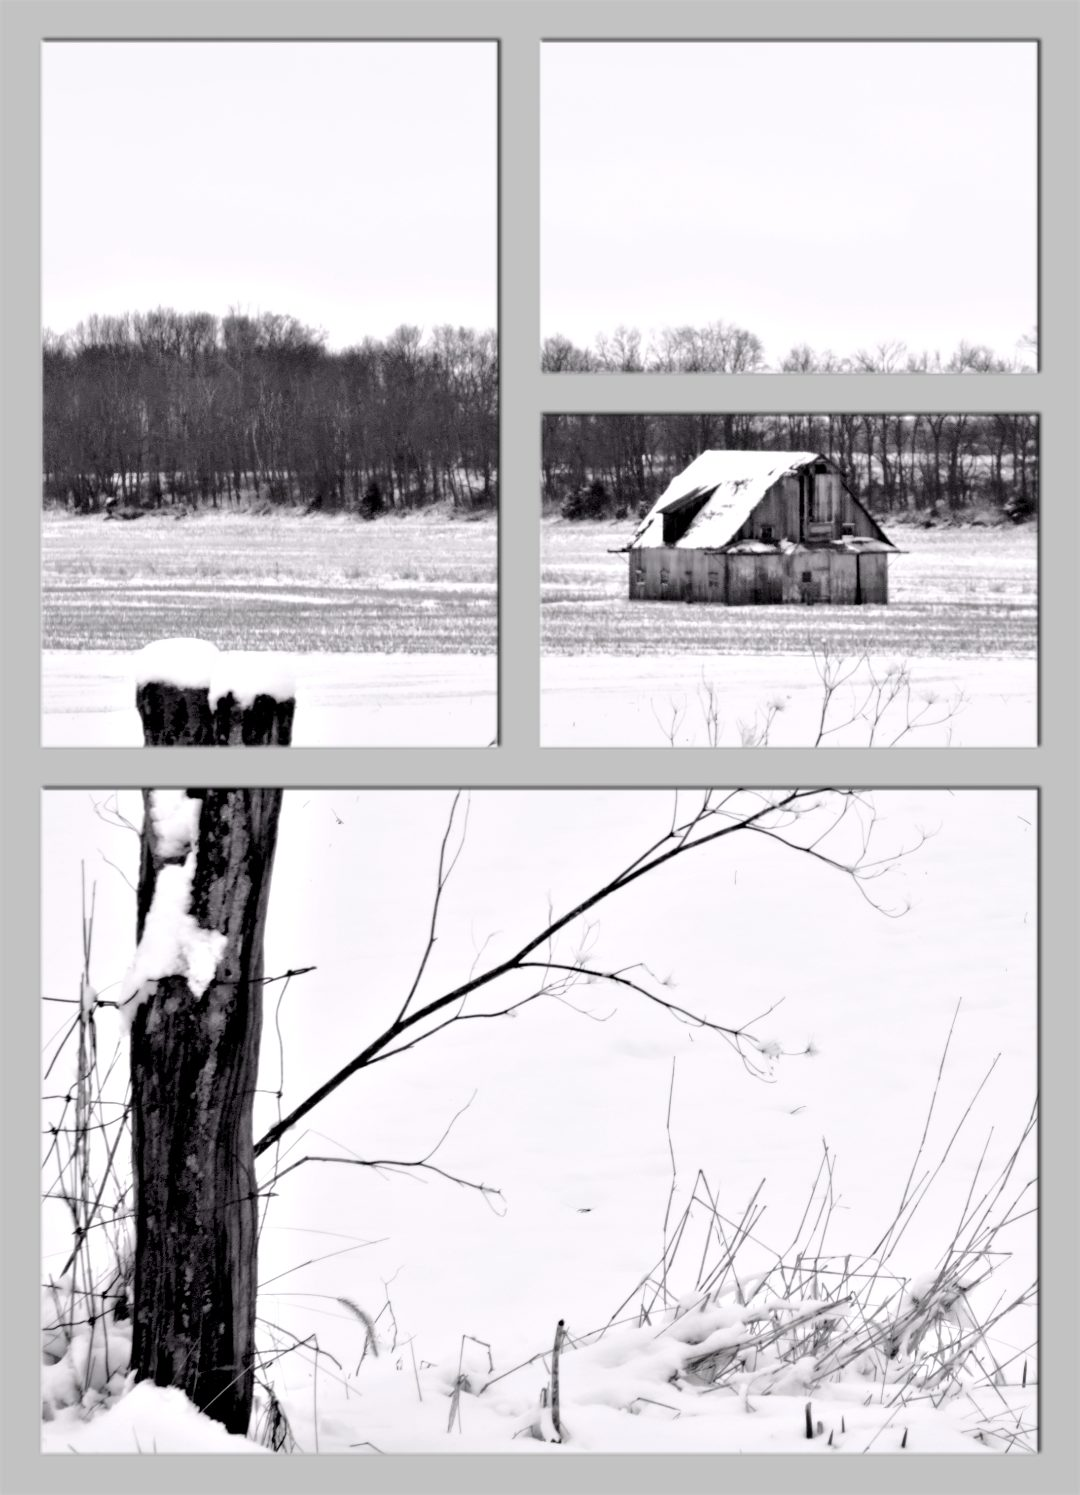 B&W Barn in Winter SplitImage©